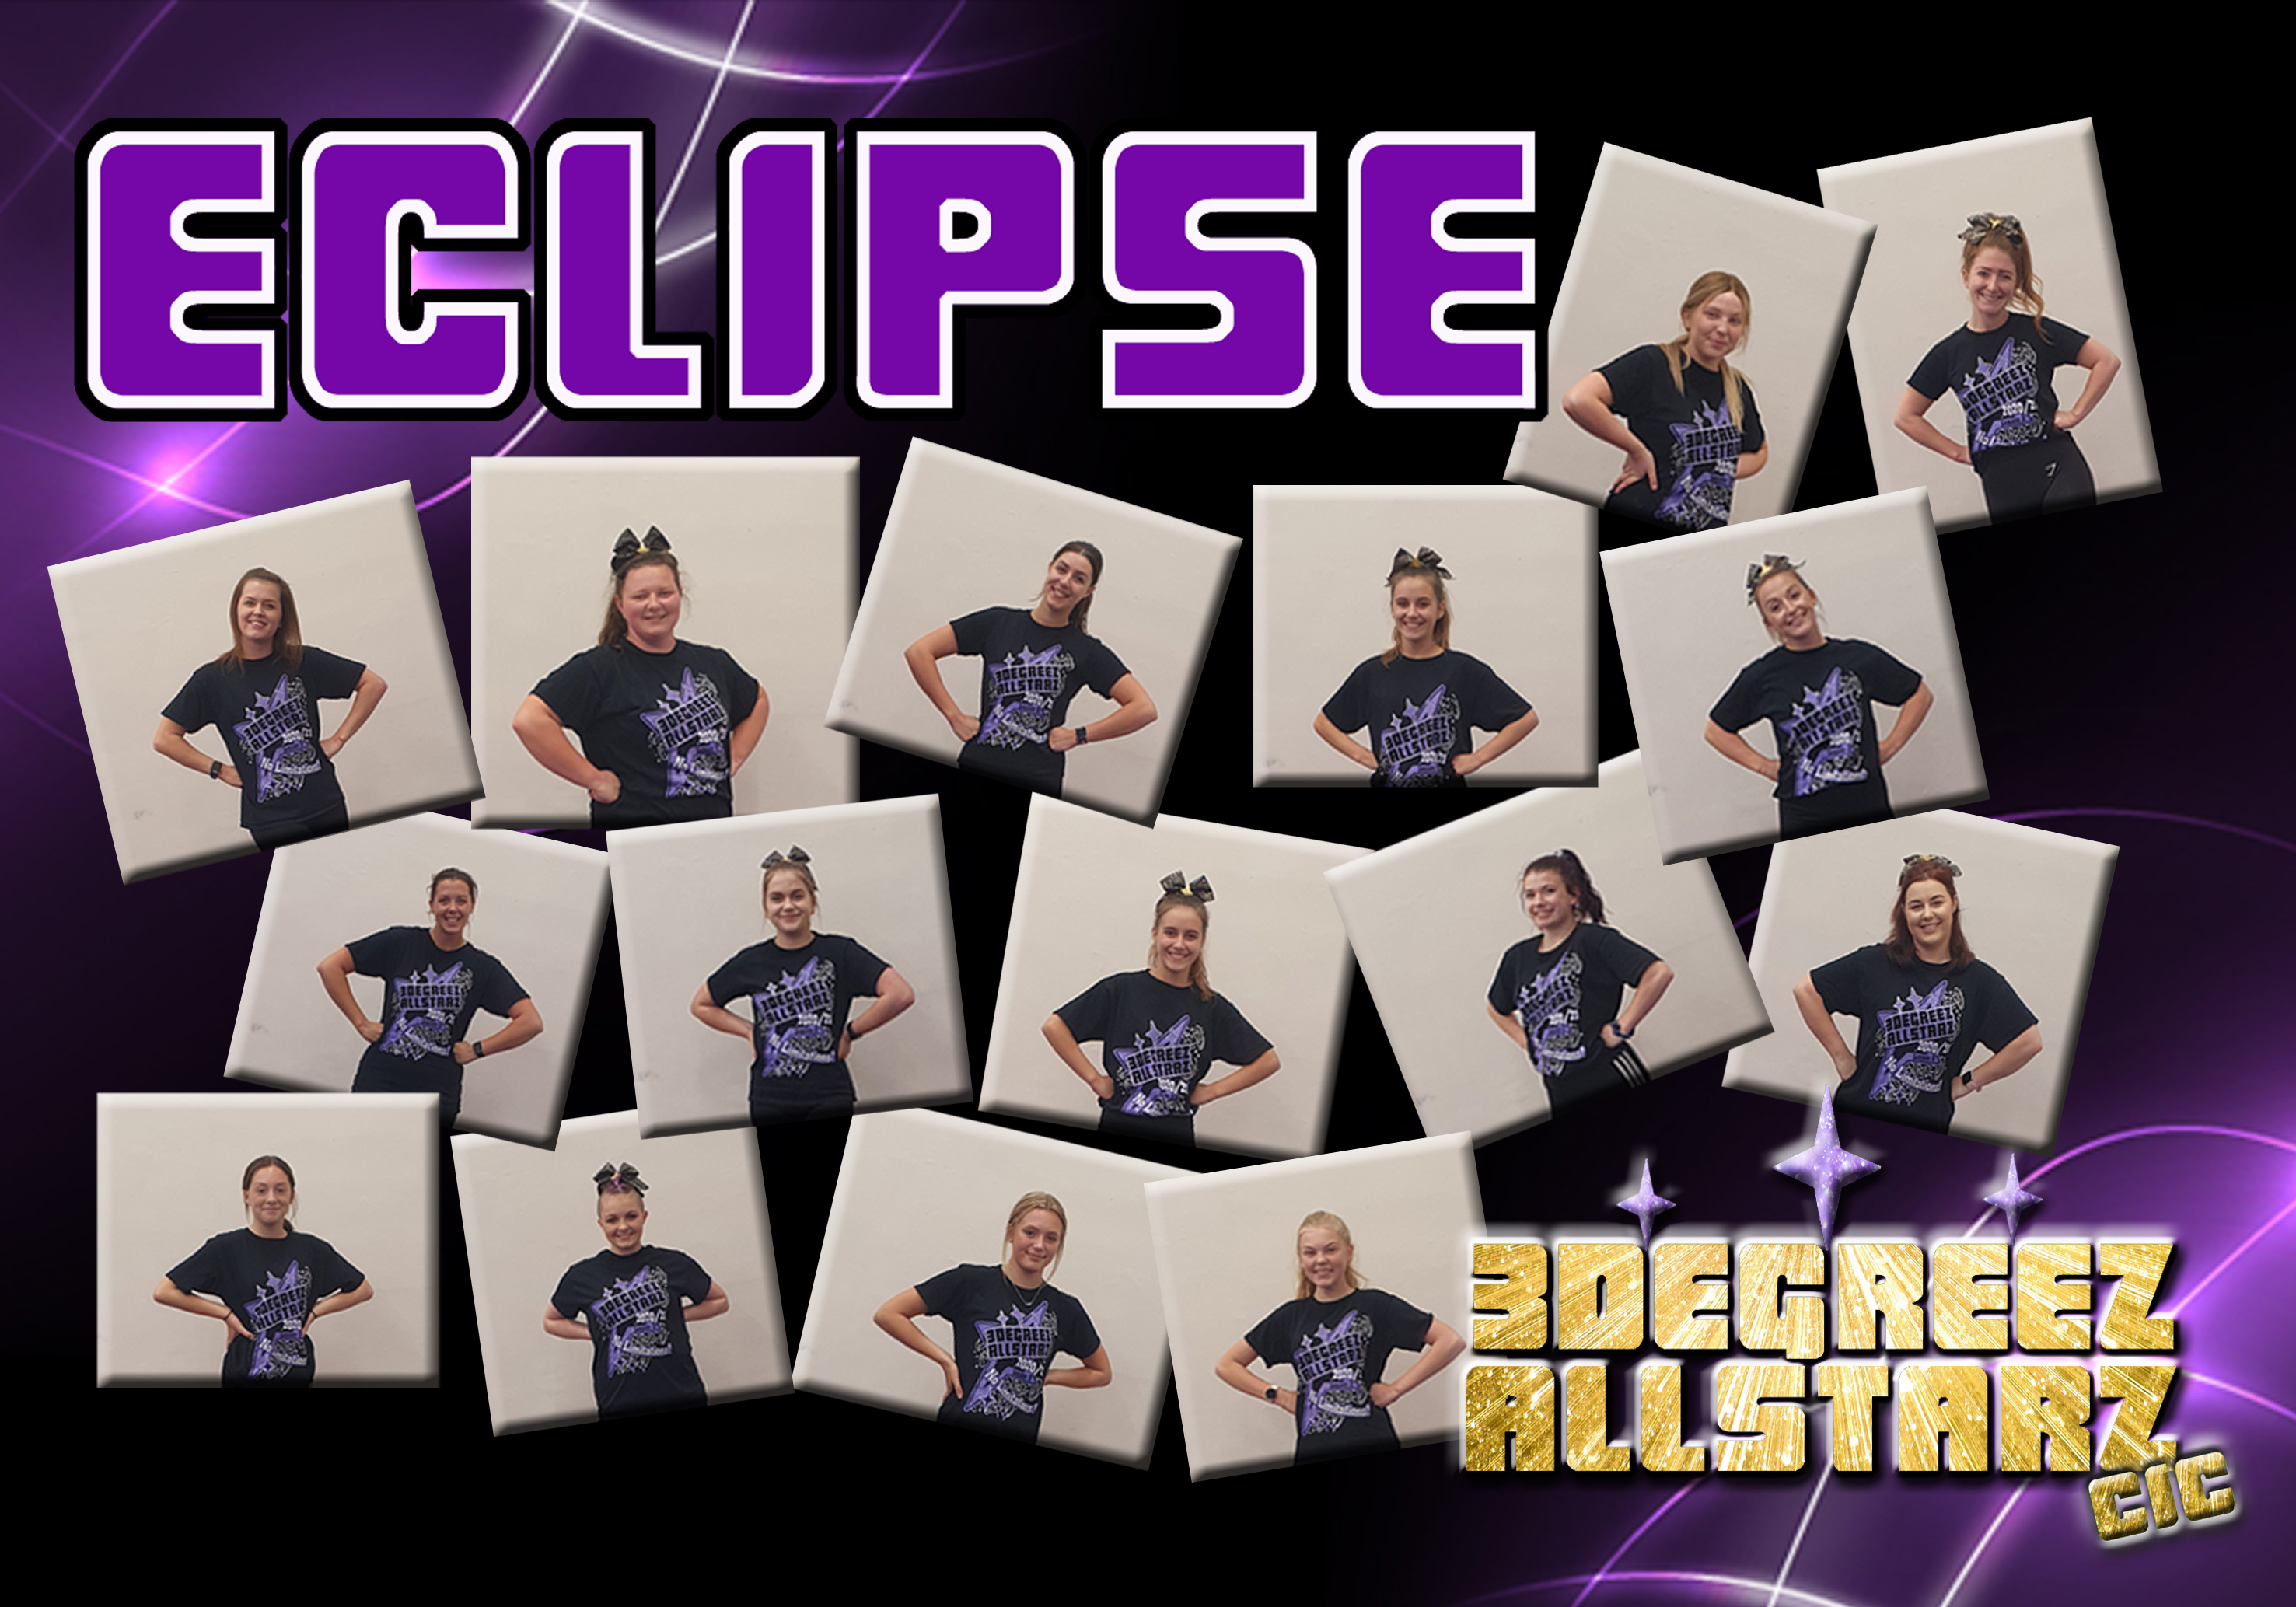 Team Eclipse